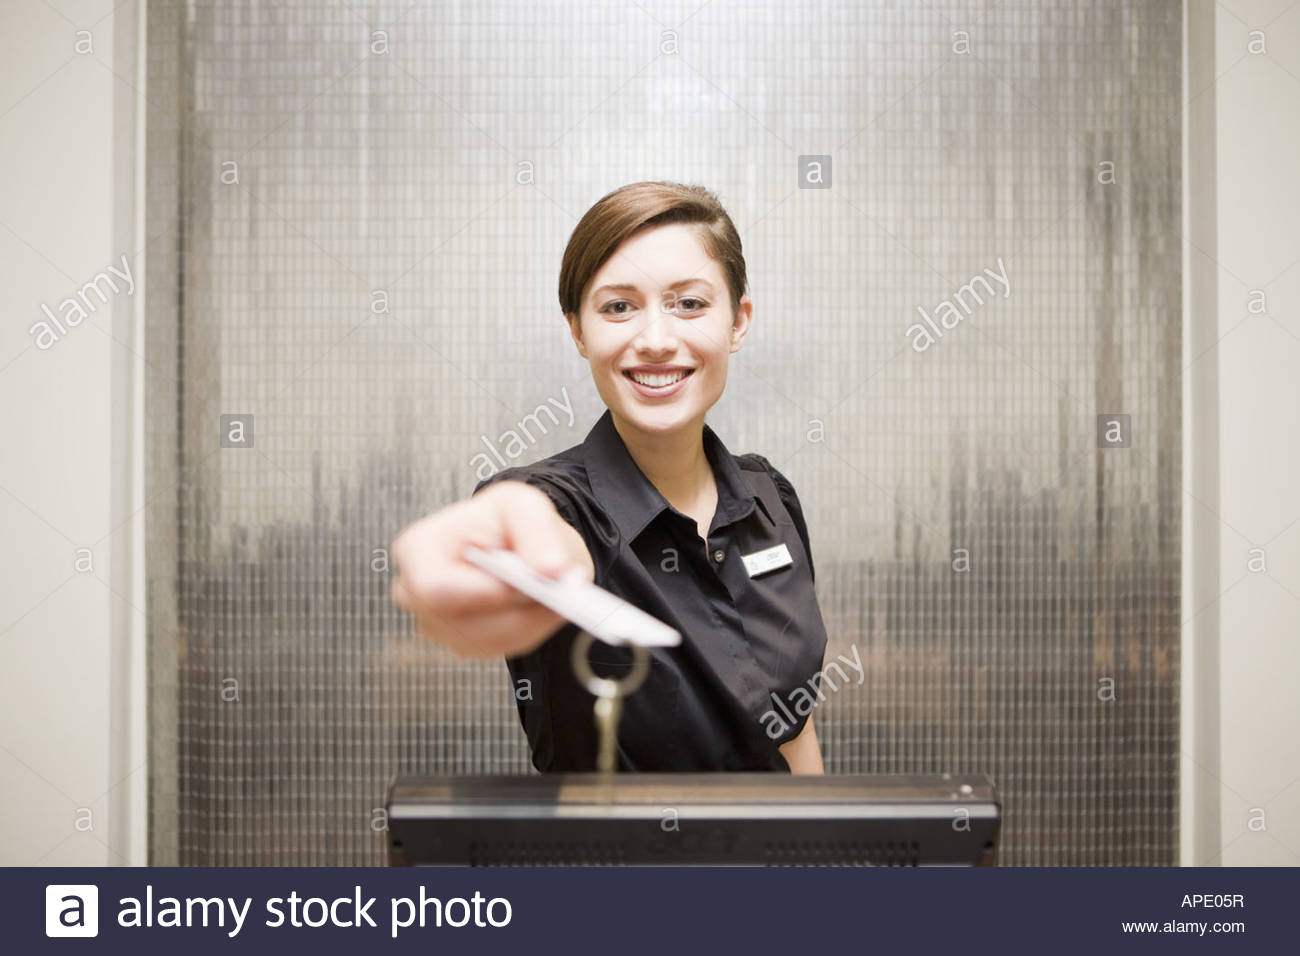 working at a hotel front desk